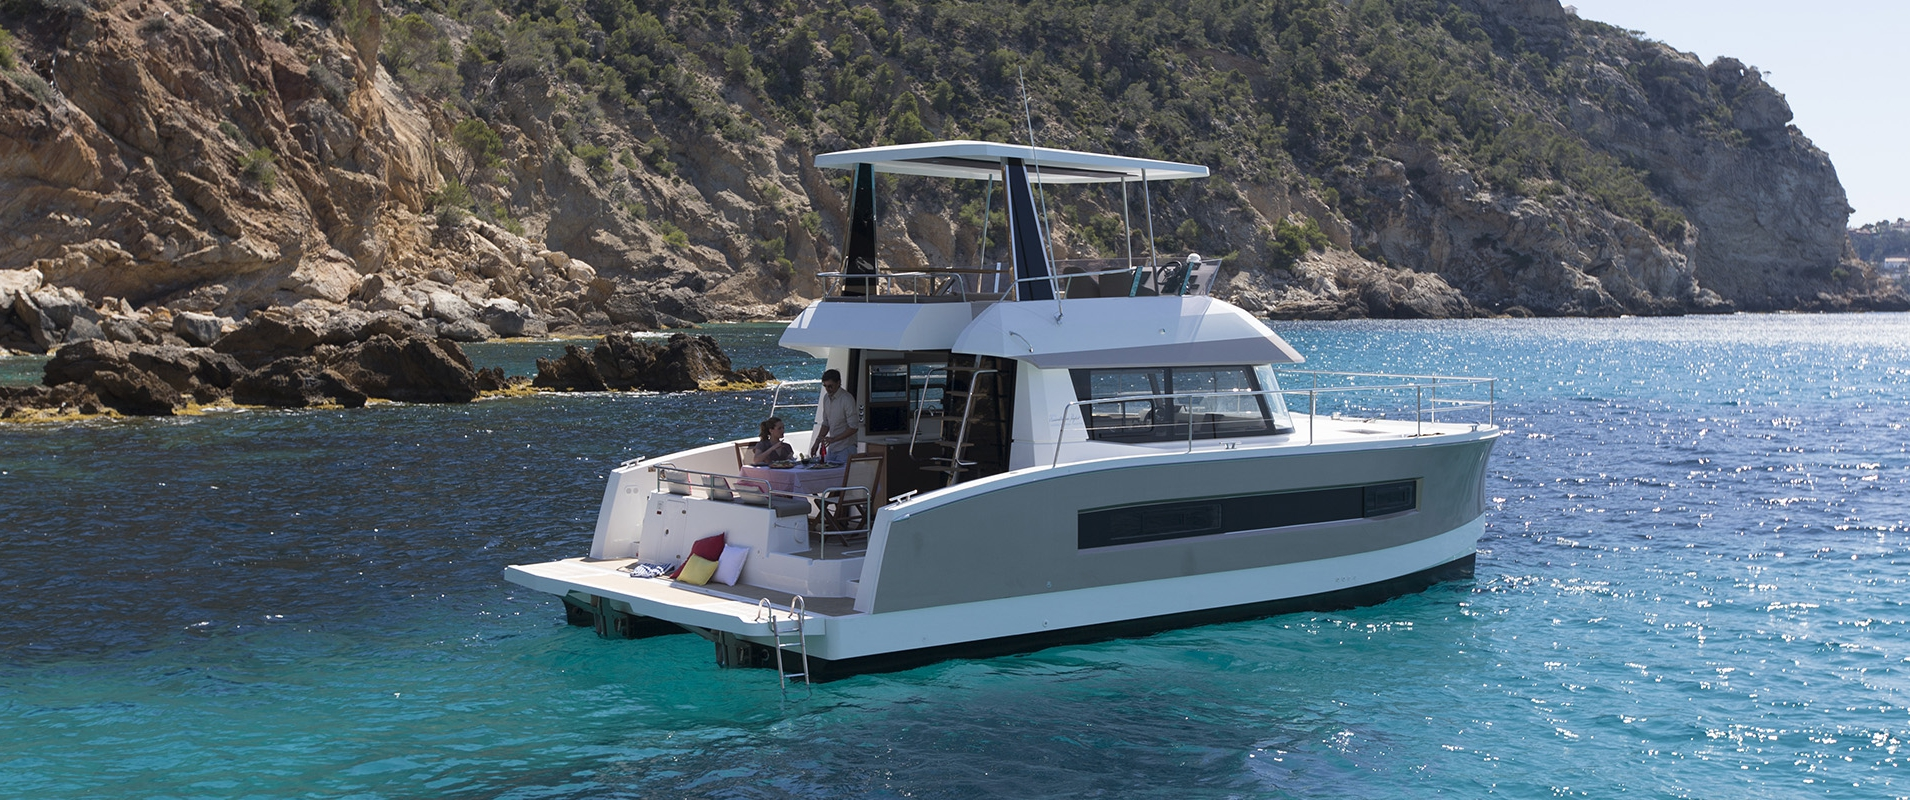 Motor Yacht My 37 Fountaine Pajot